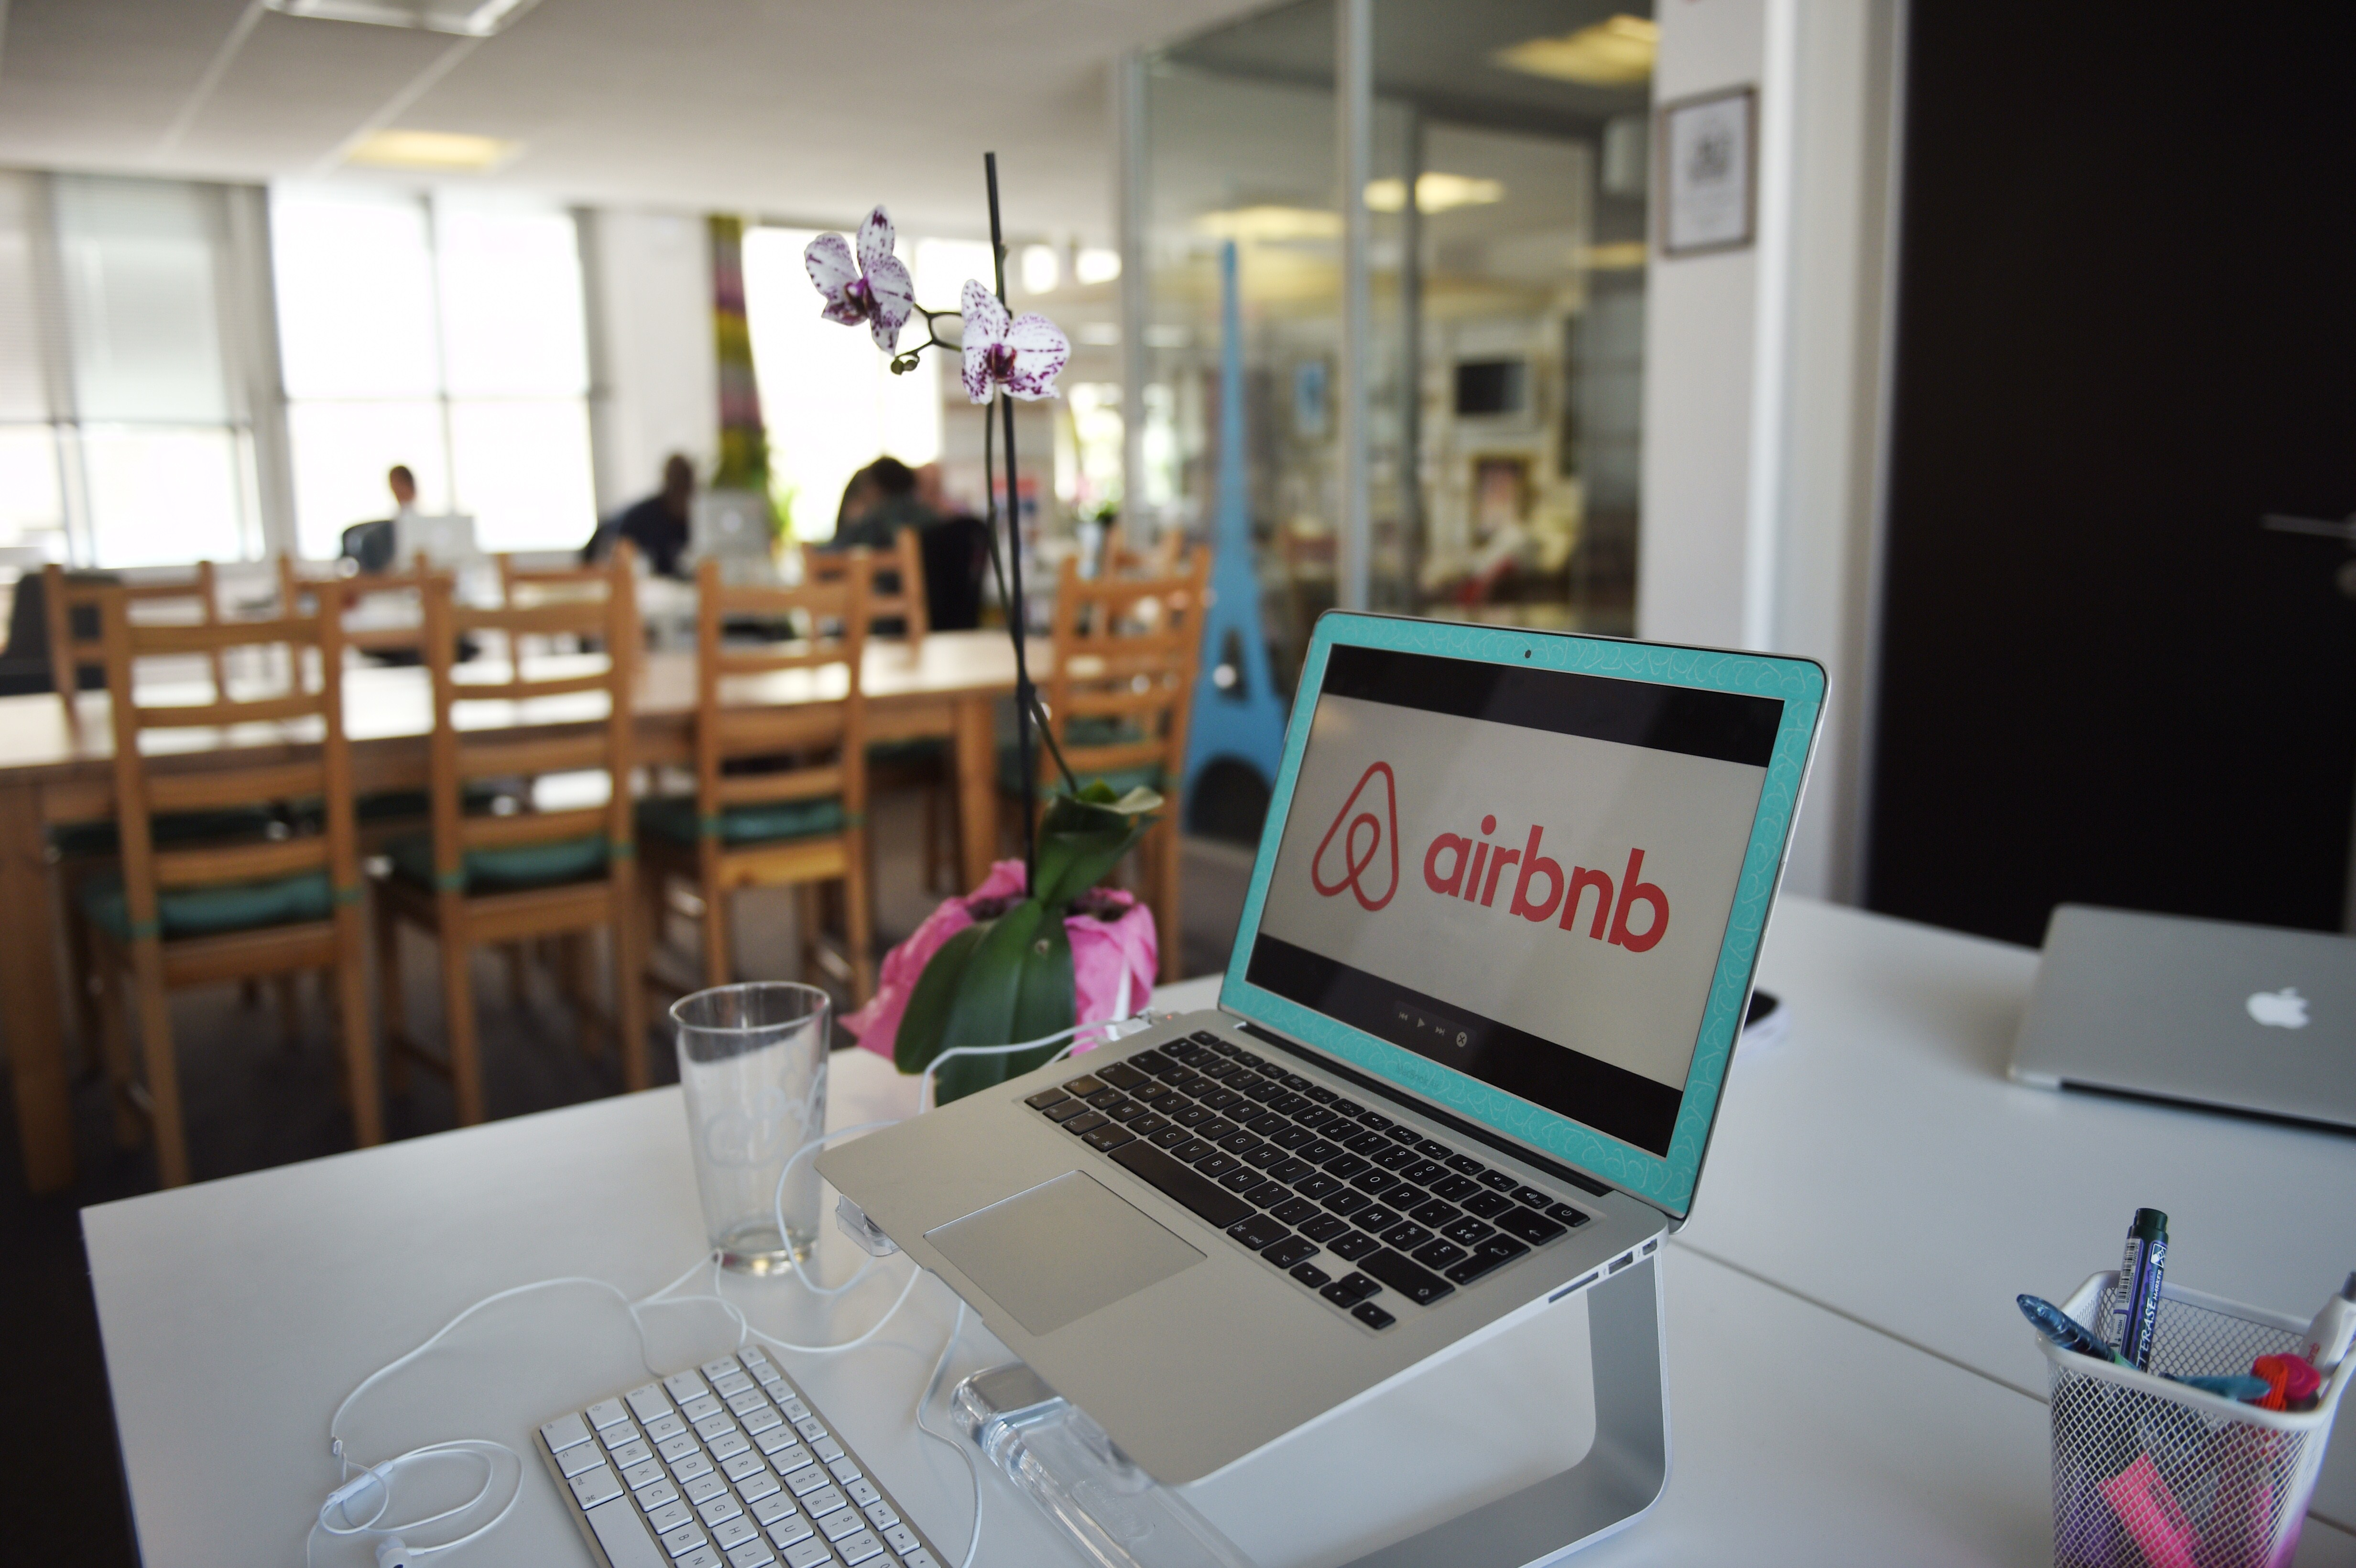 Airbnb logo displayed on a computer screen in the Airbnb offices in Paris on April 21, 2015